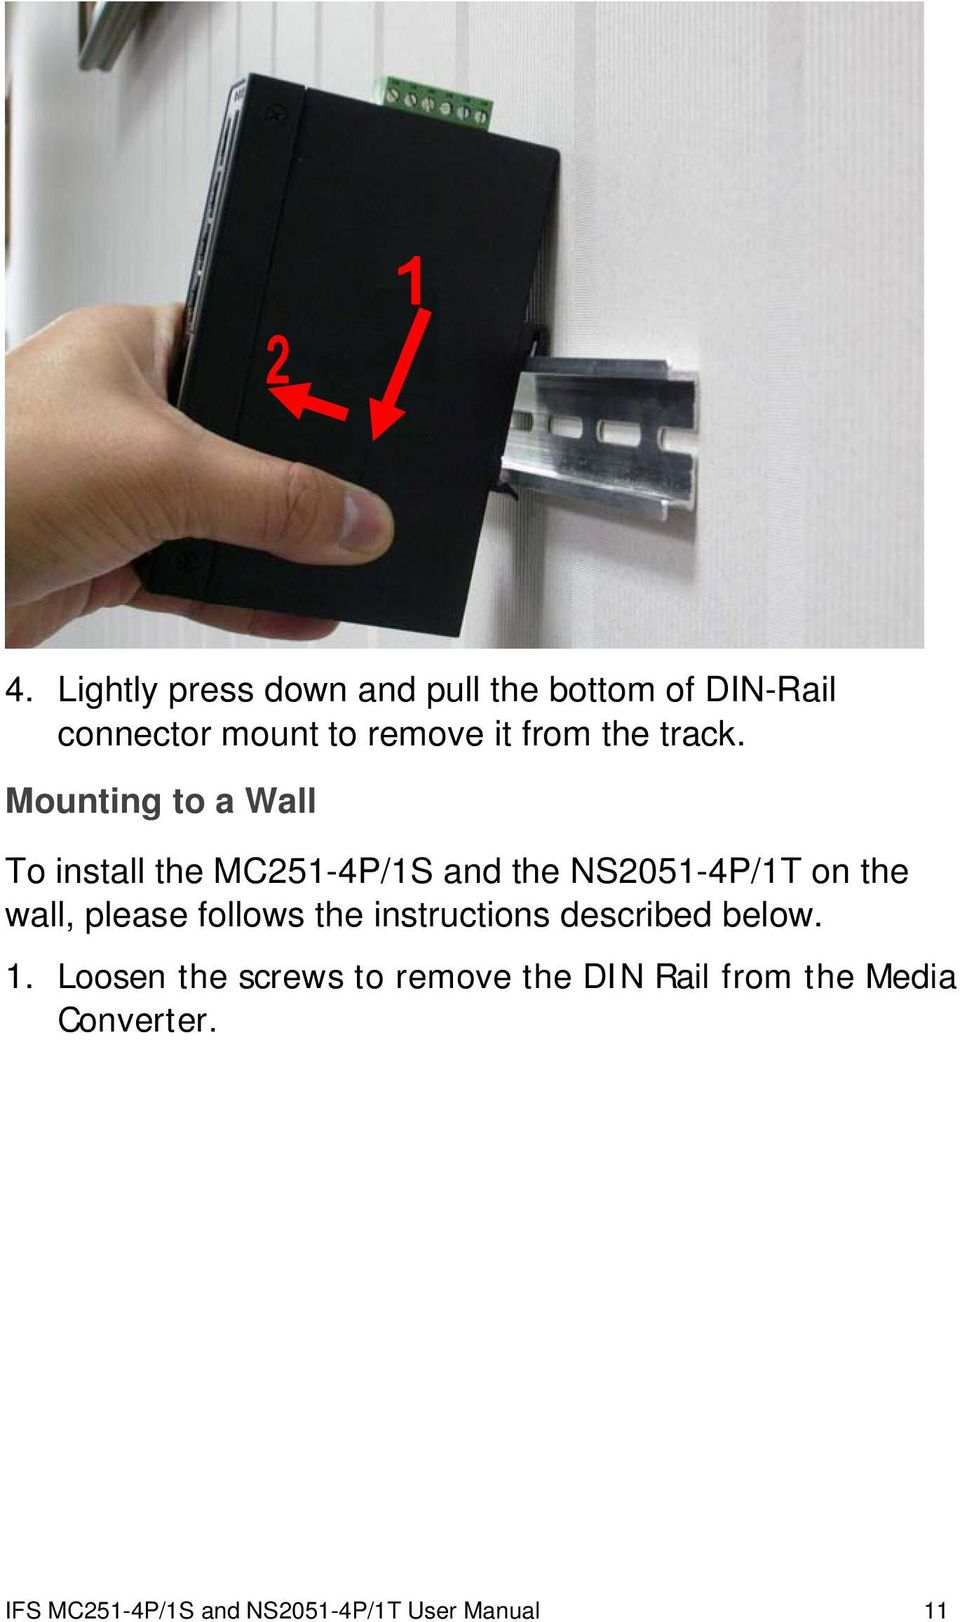 Mounting to a Wall To install the MC251-4P/1S and the NS2051-4P/1T on the wall, please